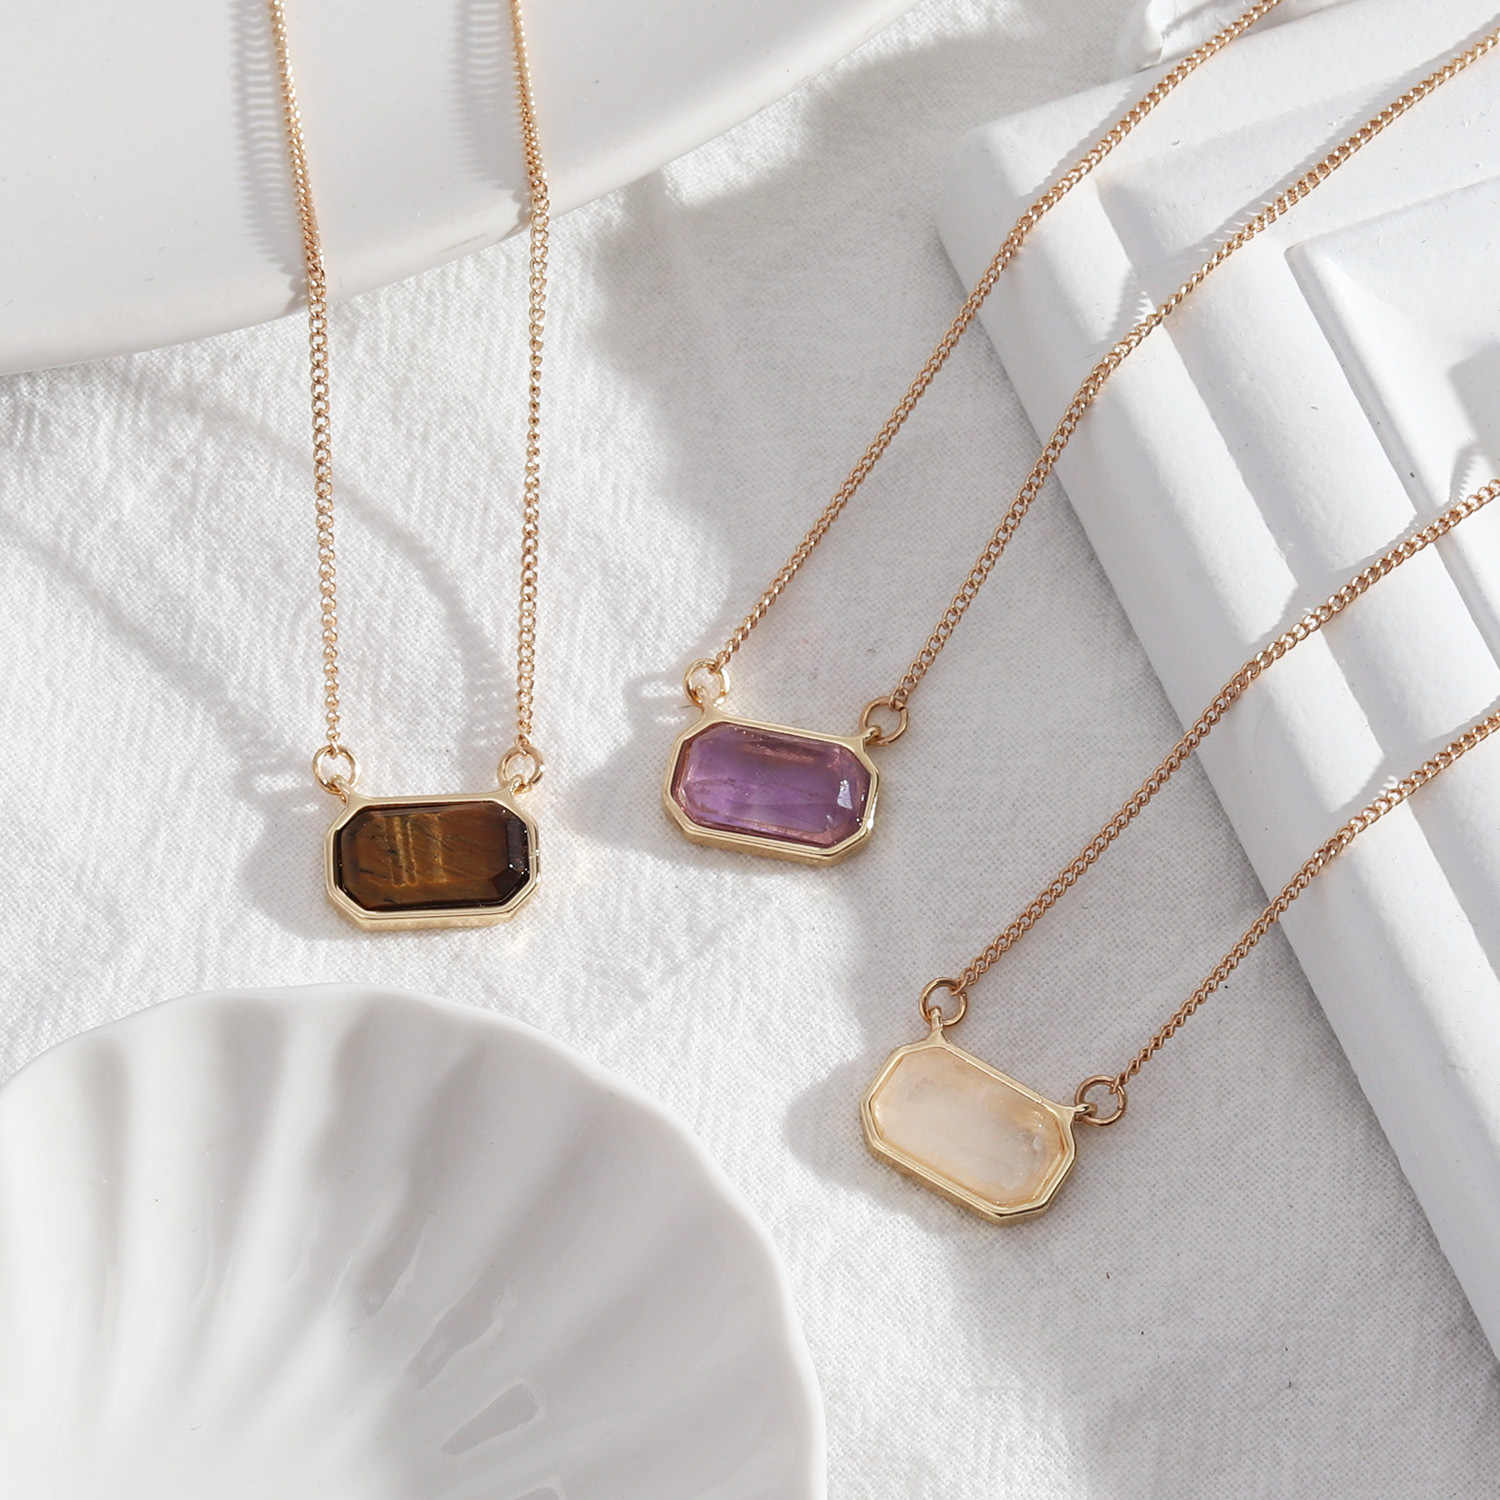 Hexagonal Oval Lucite Stone Pendant  Necklace And Earring Set